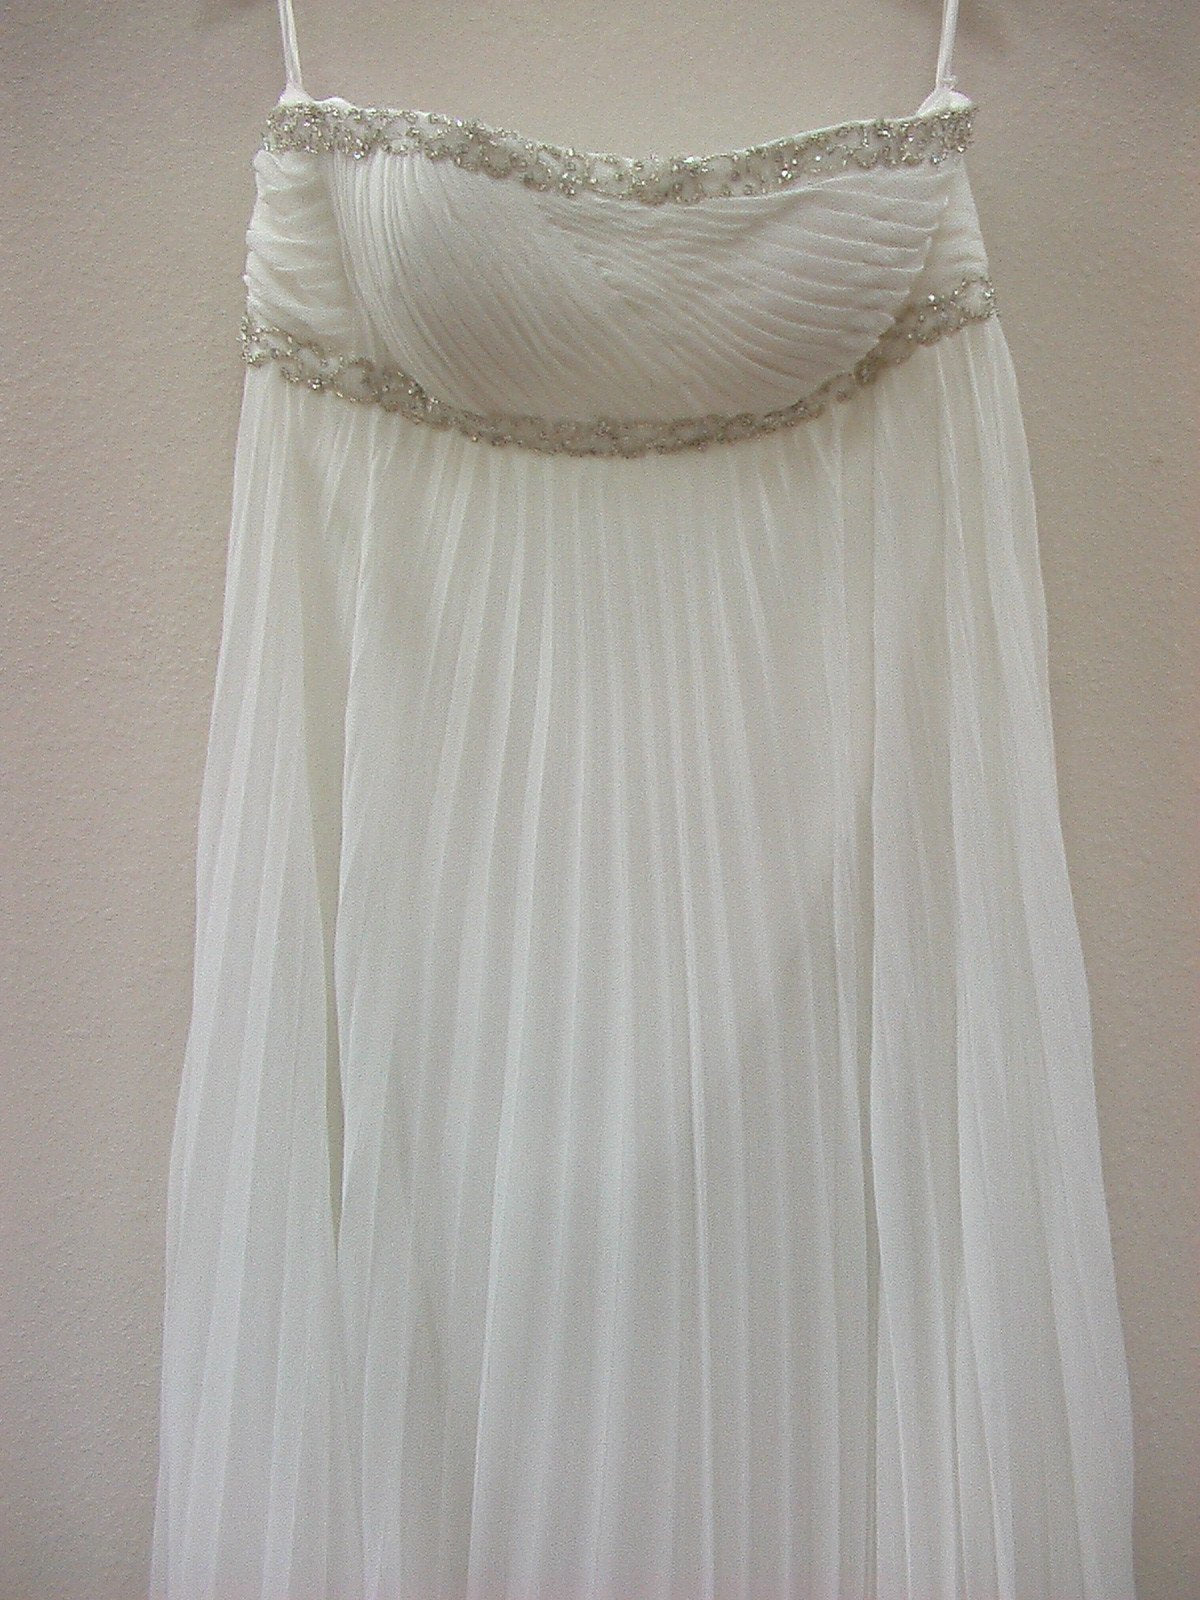 Dere Kiang 1191012 Ivory/Silver size 16 In Stock Wedding Dress - Tom's Bridal